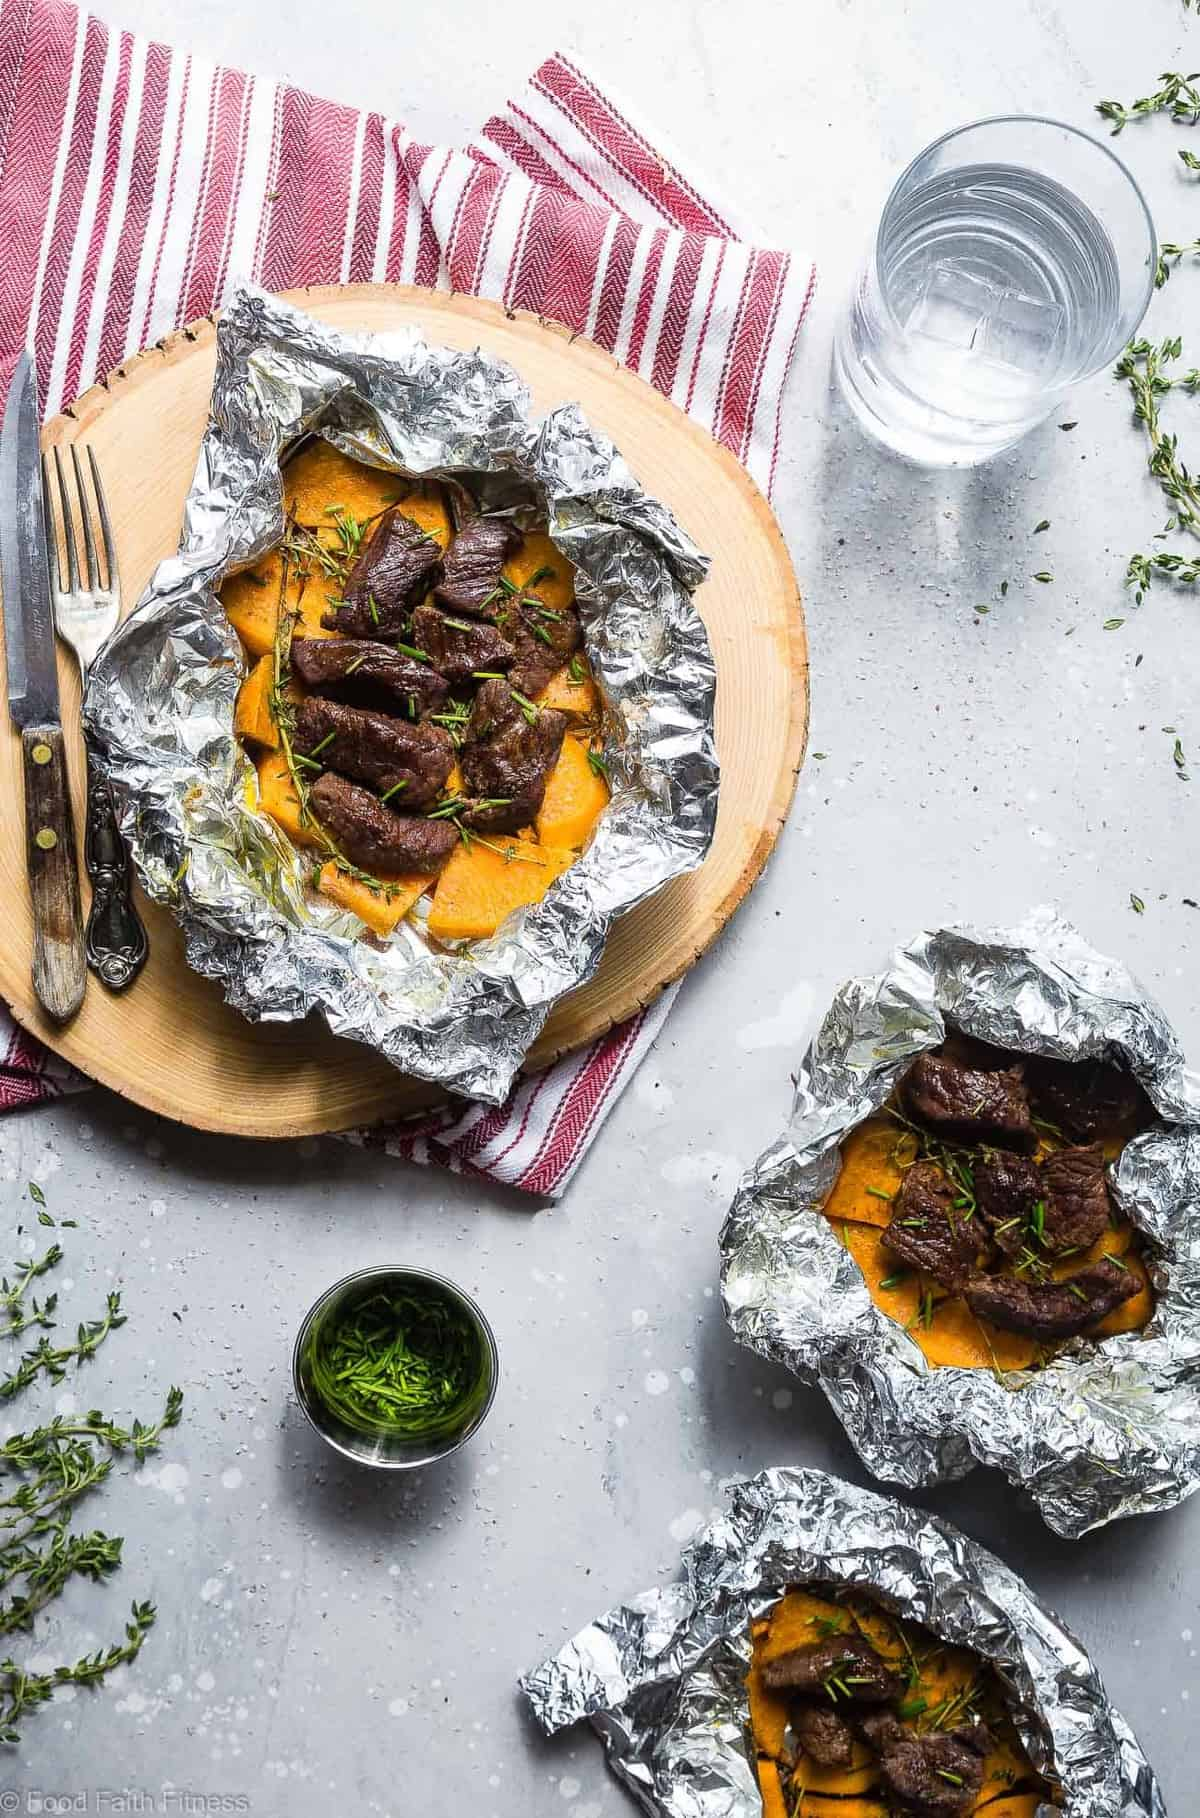 Garlic Steak and Potato Foil Packets - These EASY Steak Foil Packets are an easy, healthy and whole30 approved summer dinner with only 6 ingredients and 300 calories! Sure to please even the pickiest of eaters! | #Foodfaithfitness | #Glutenfree #Paleo #Whole30 #Grilling #Dairyfree